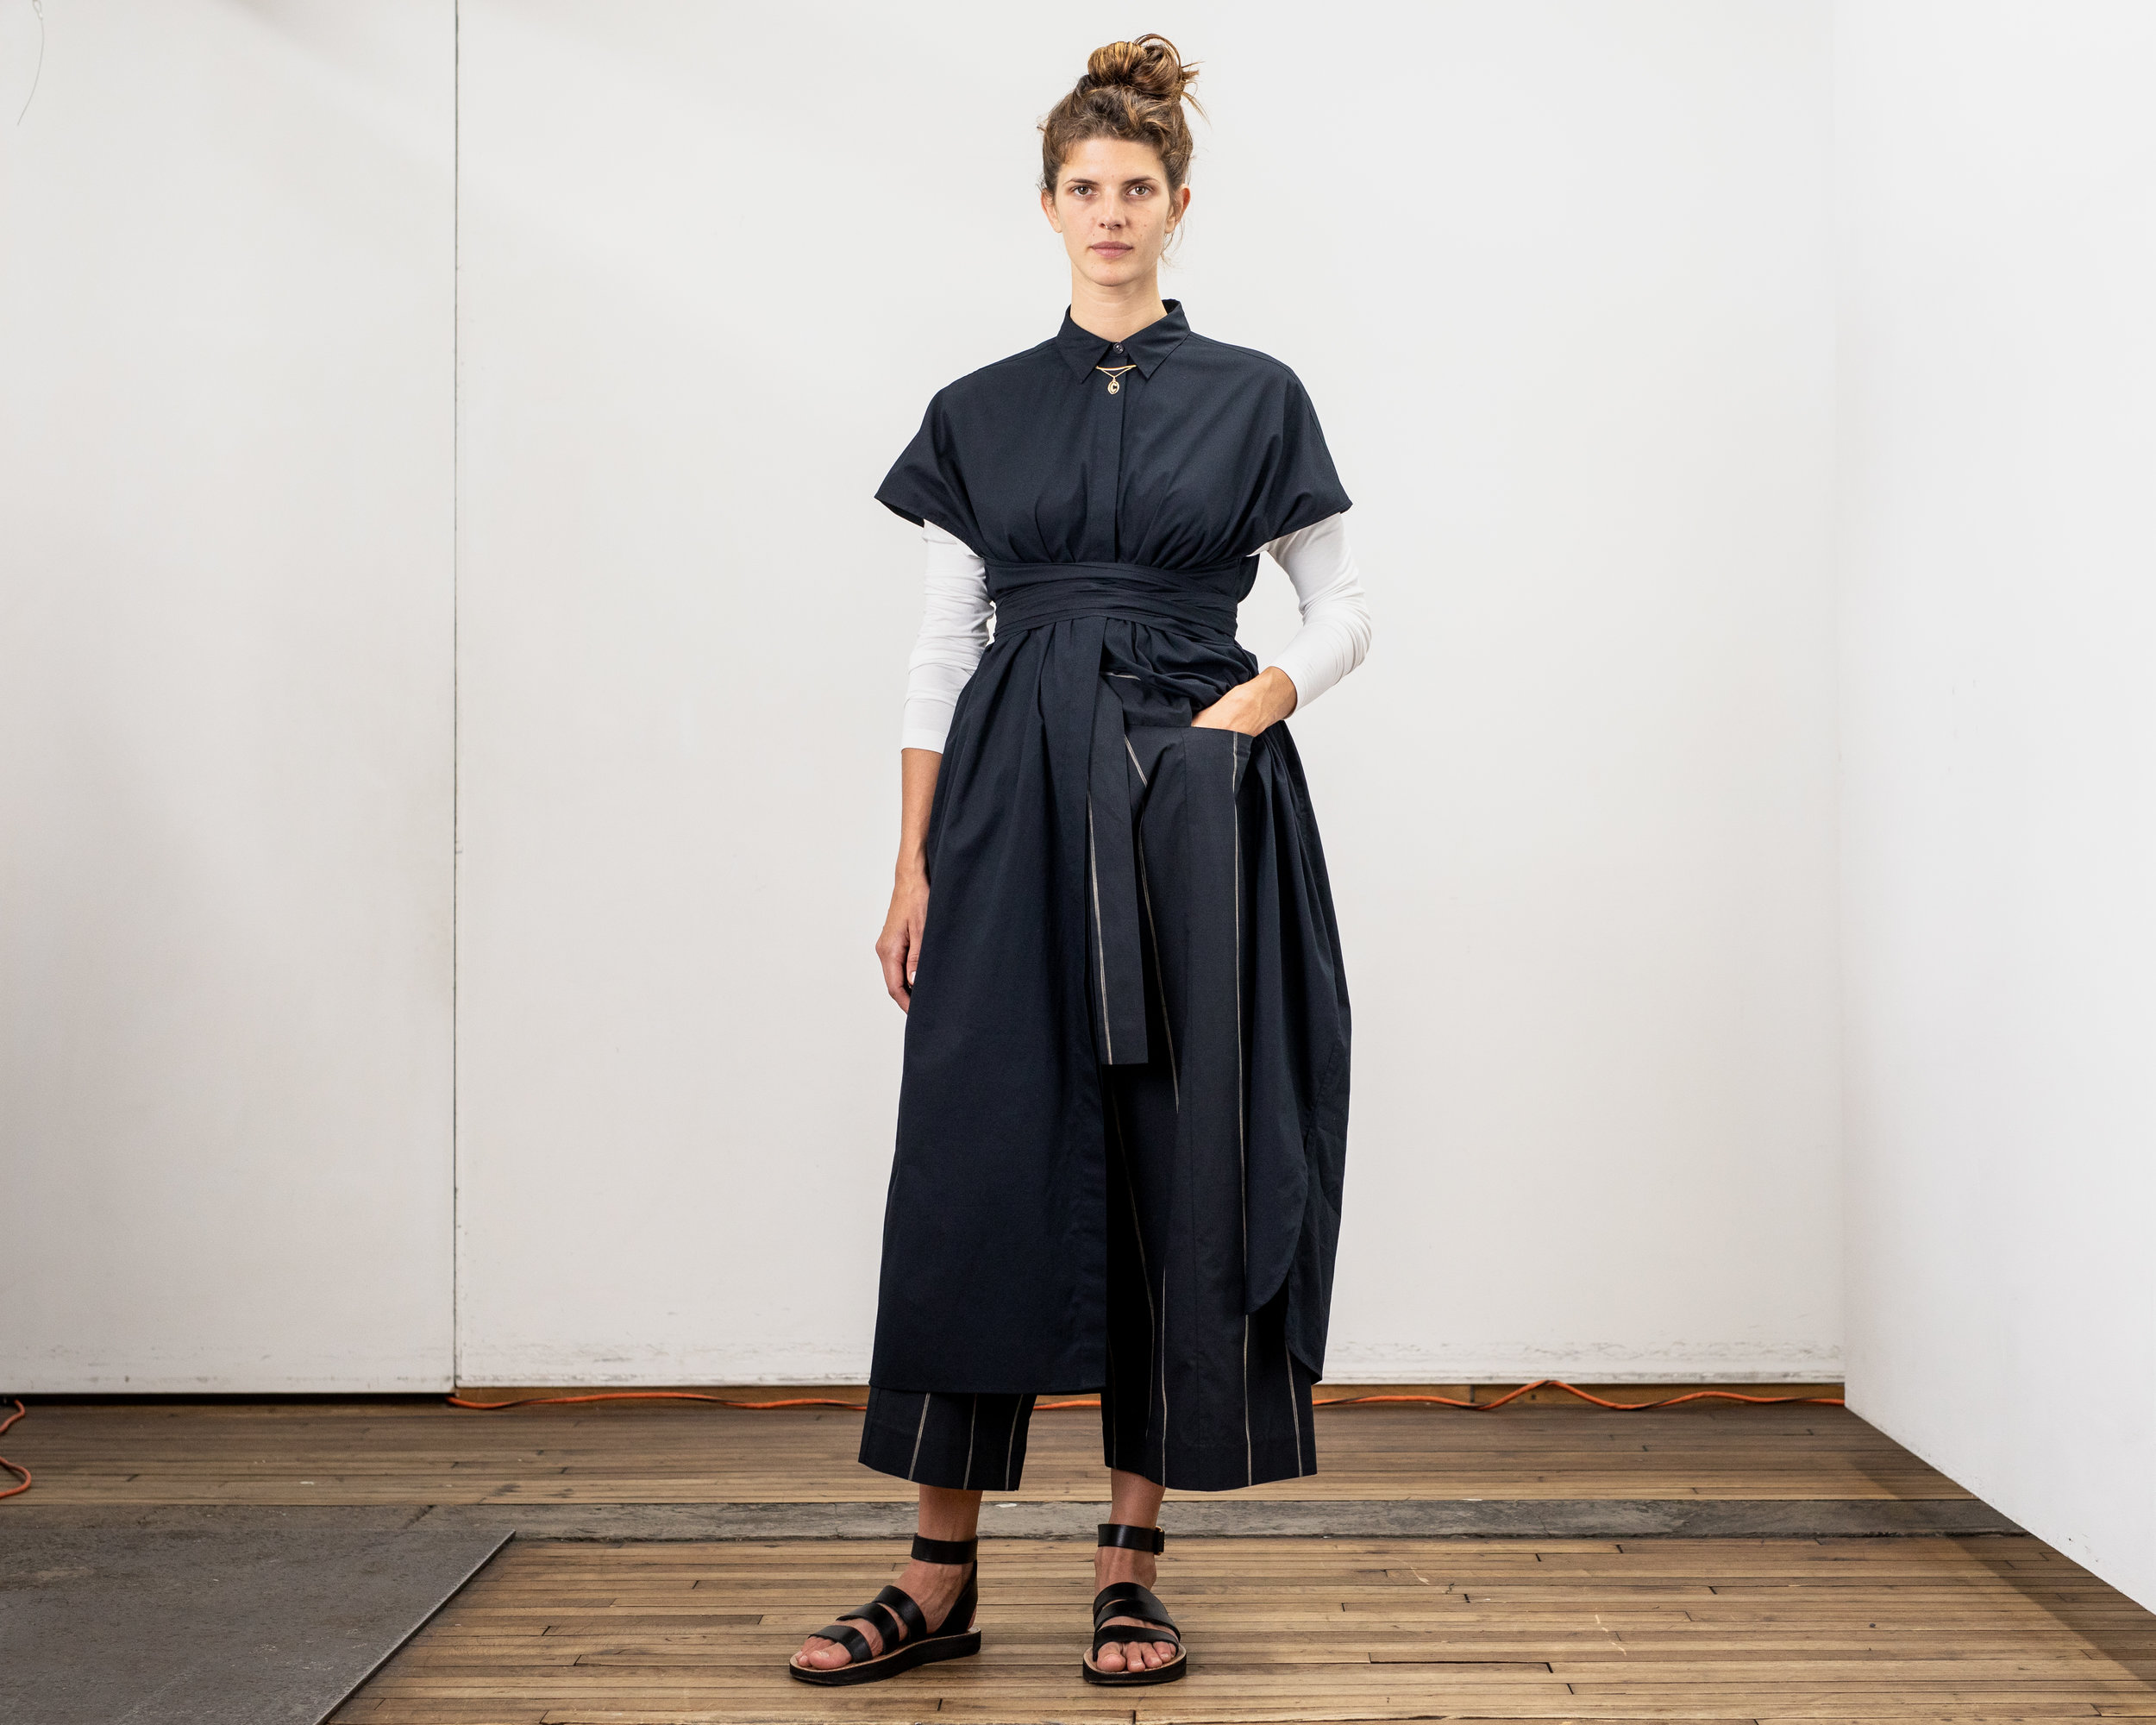 roucha-2019-lookbook-Final-5000px-38.jpg